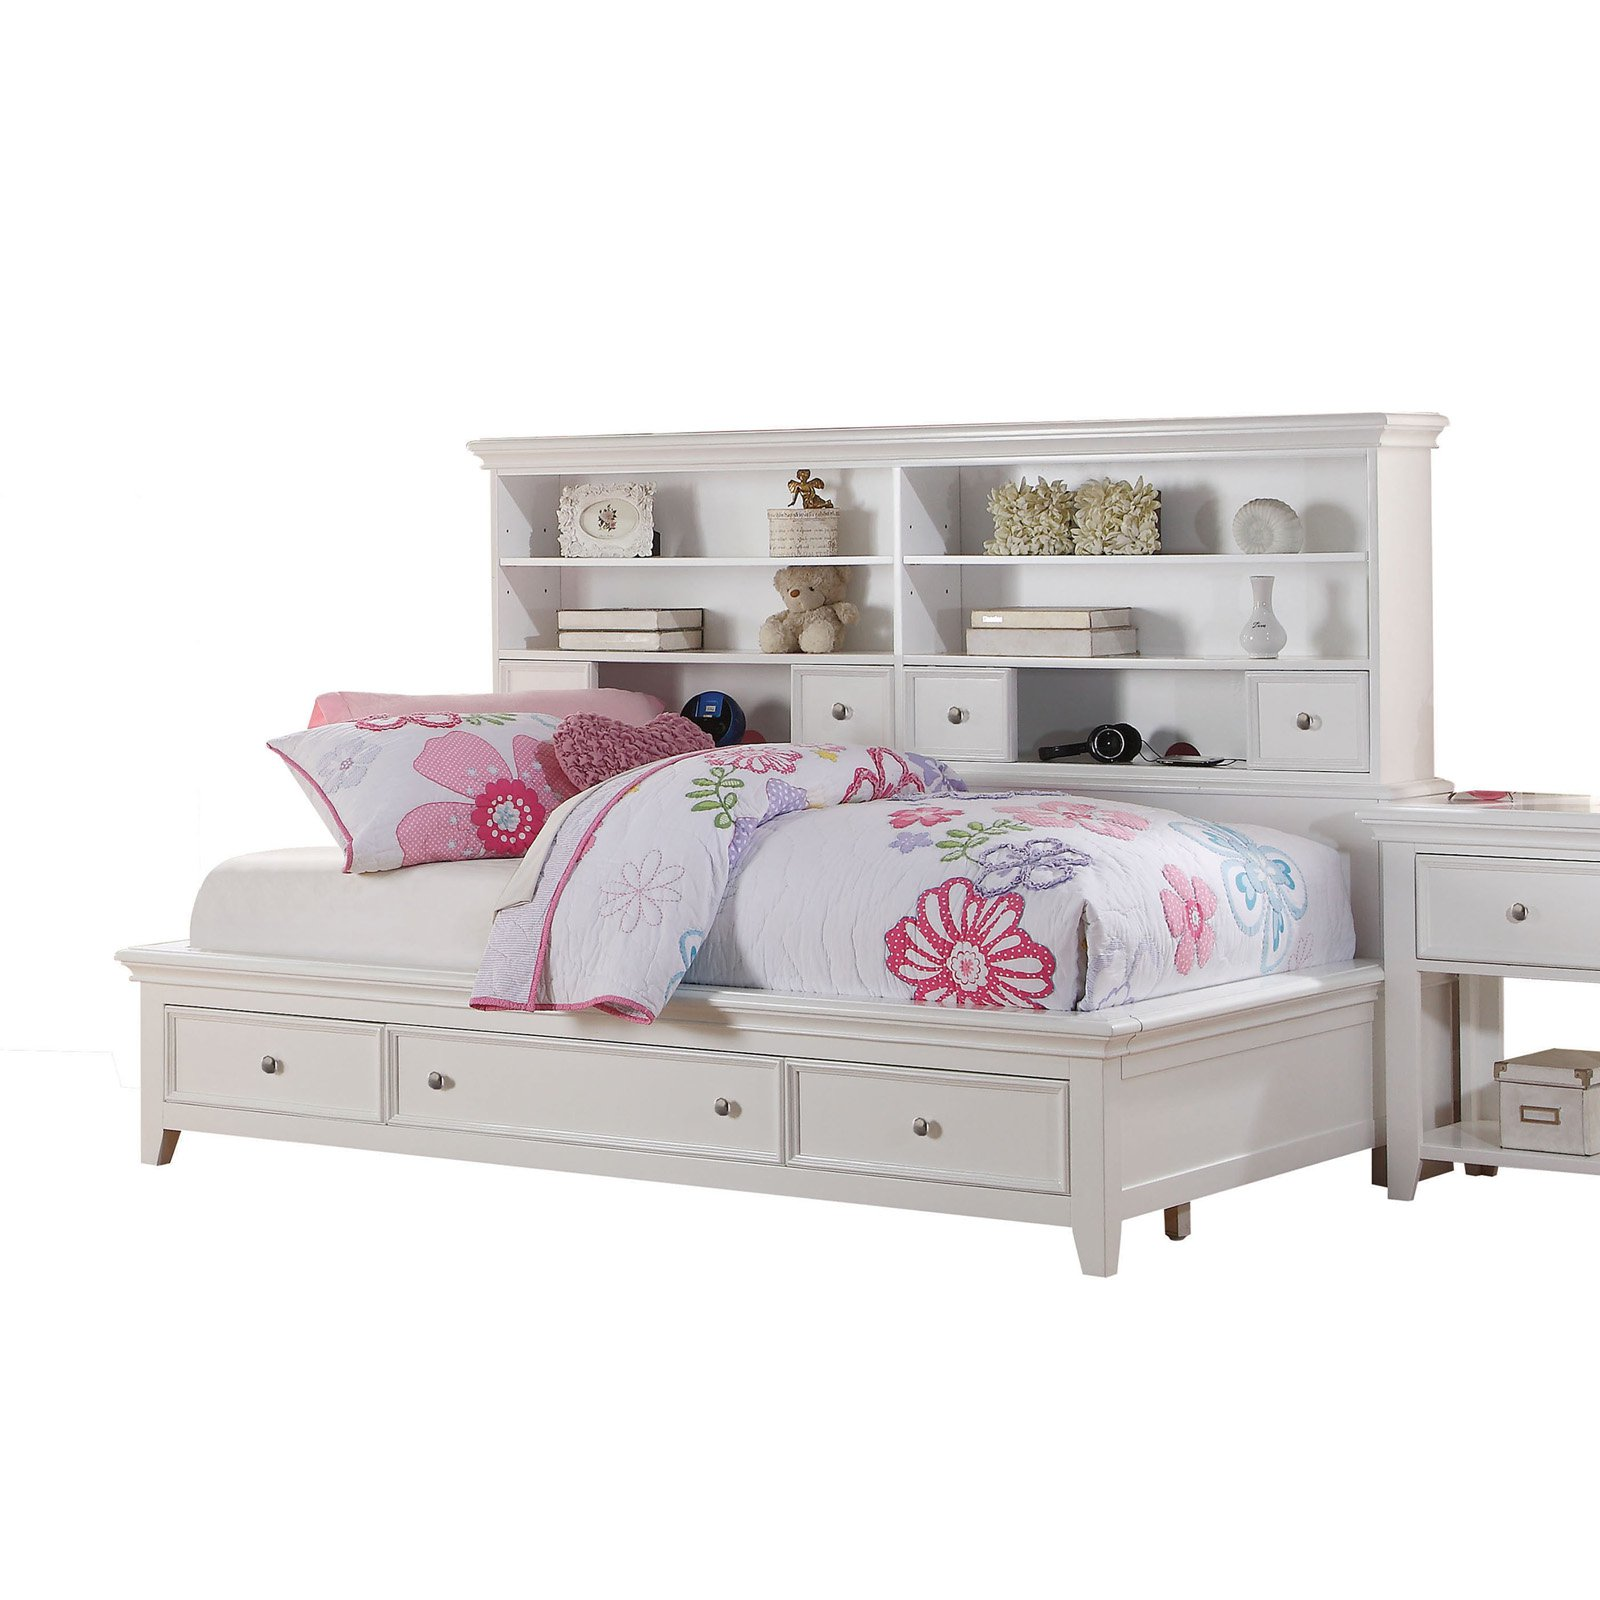 ACME Lacey Full Daybed with Storage in White Pine Wood, Multiple Sizes